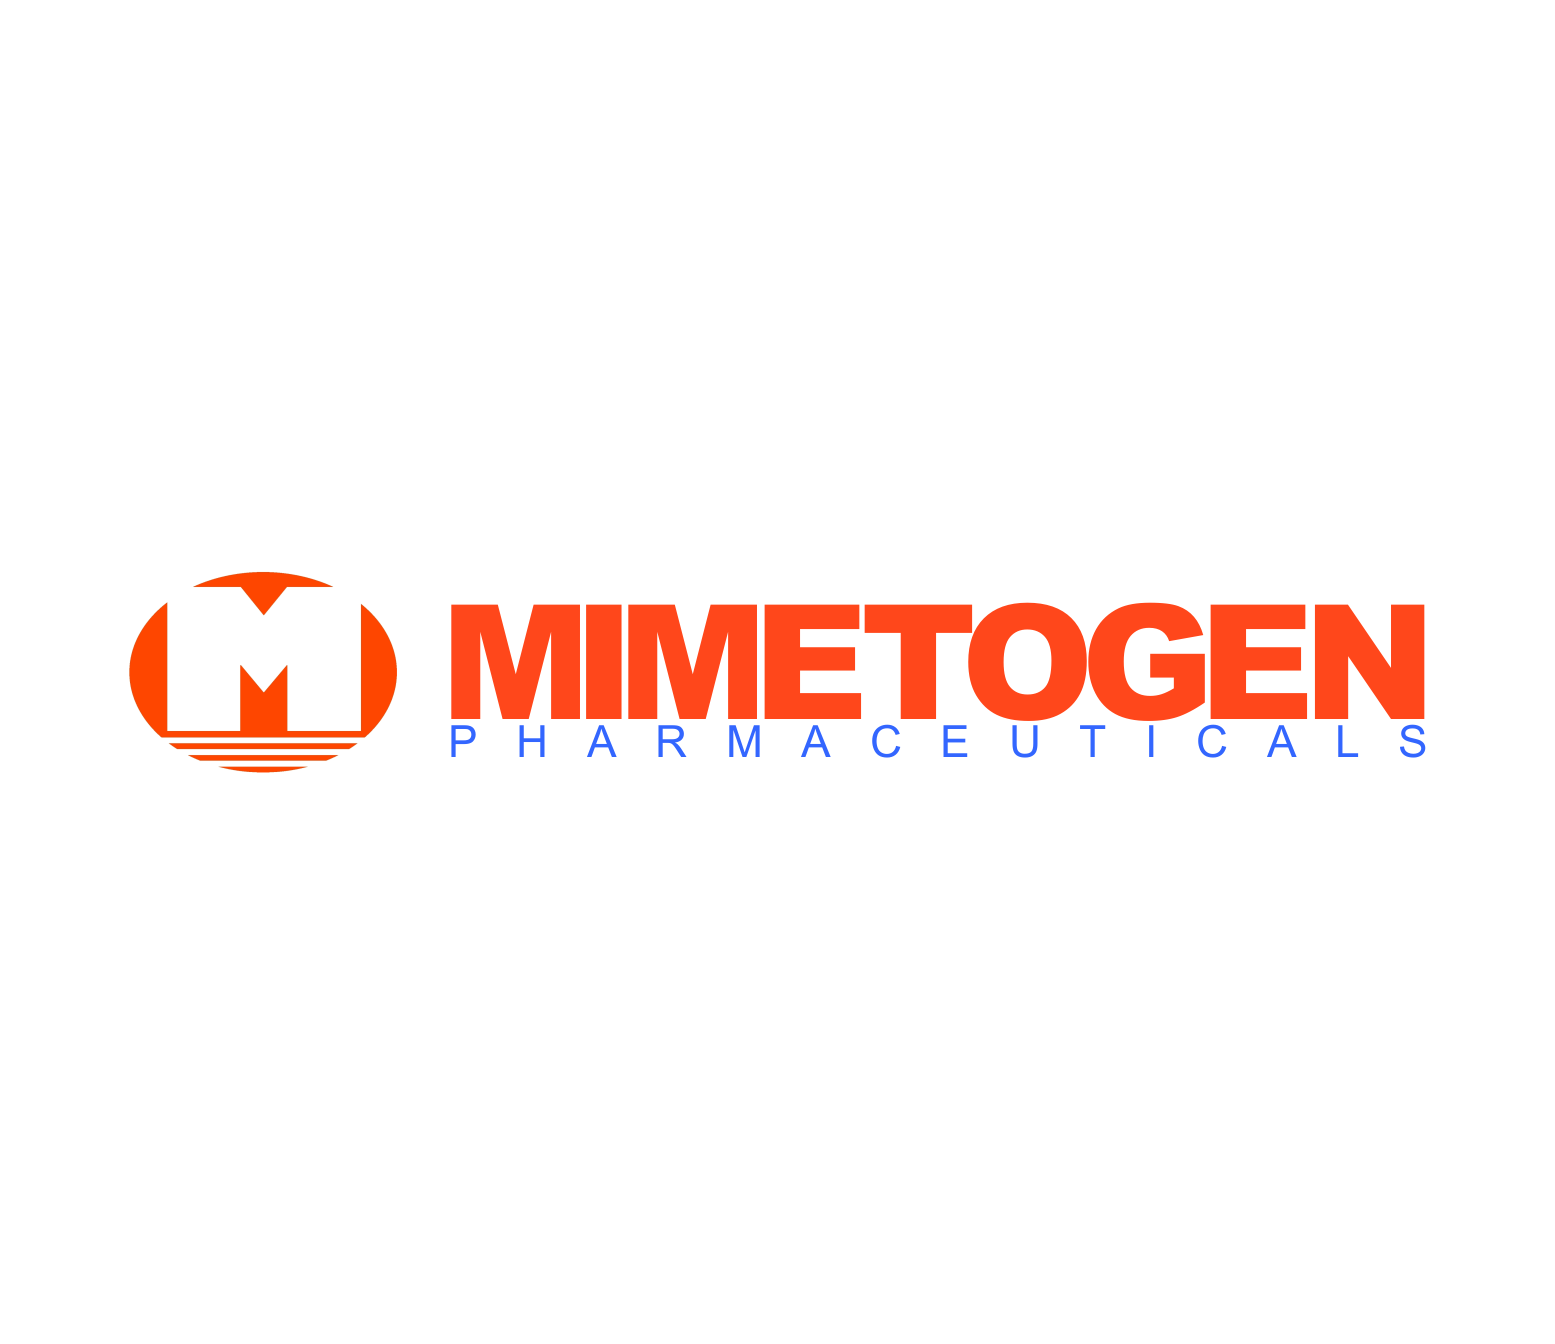 Mimetogen Pharmaceuticals is a clinical stage biotechnology company focused on treating opthalmic diseases with high unmet medical needs.  (ACQUIRED).